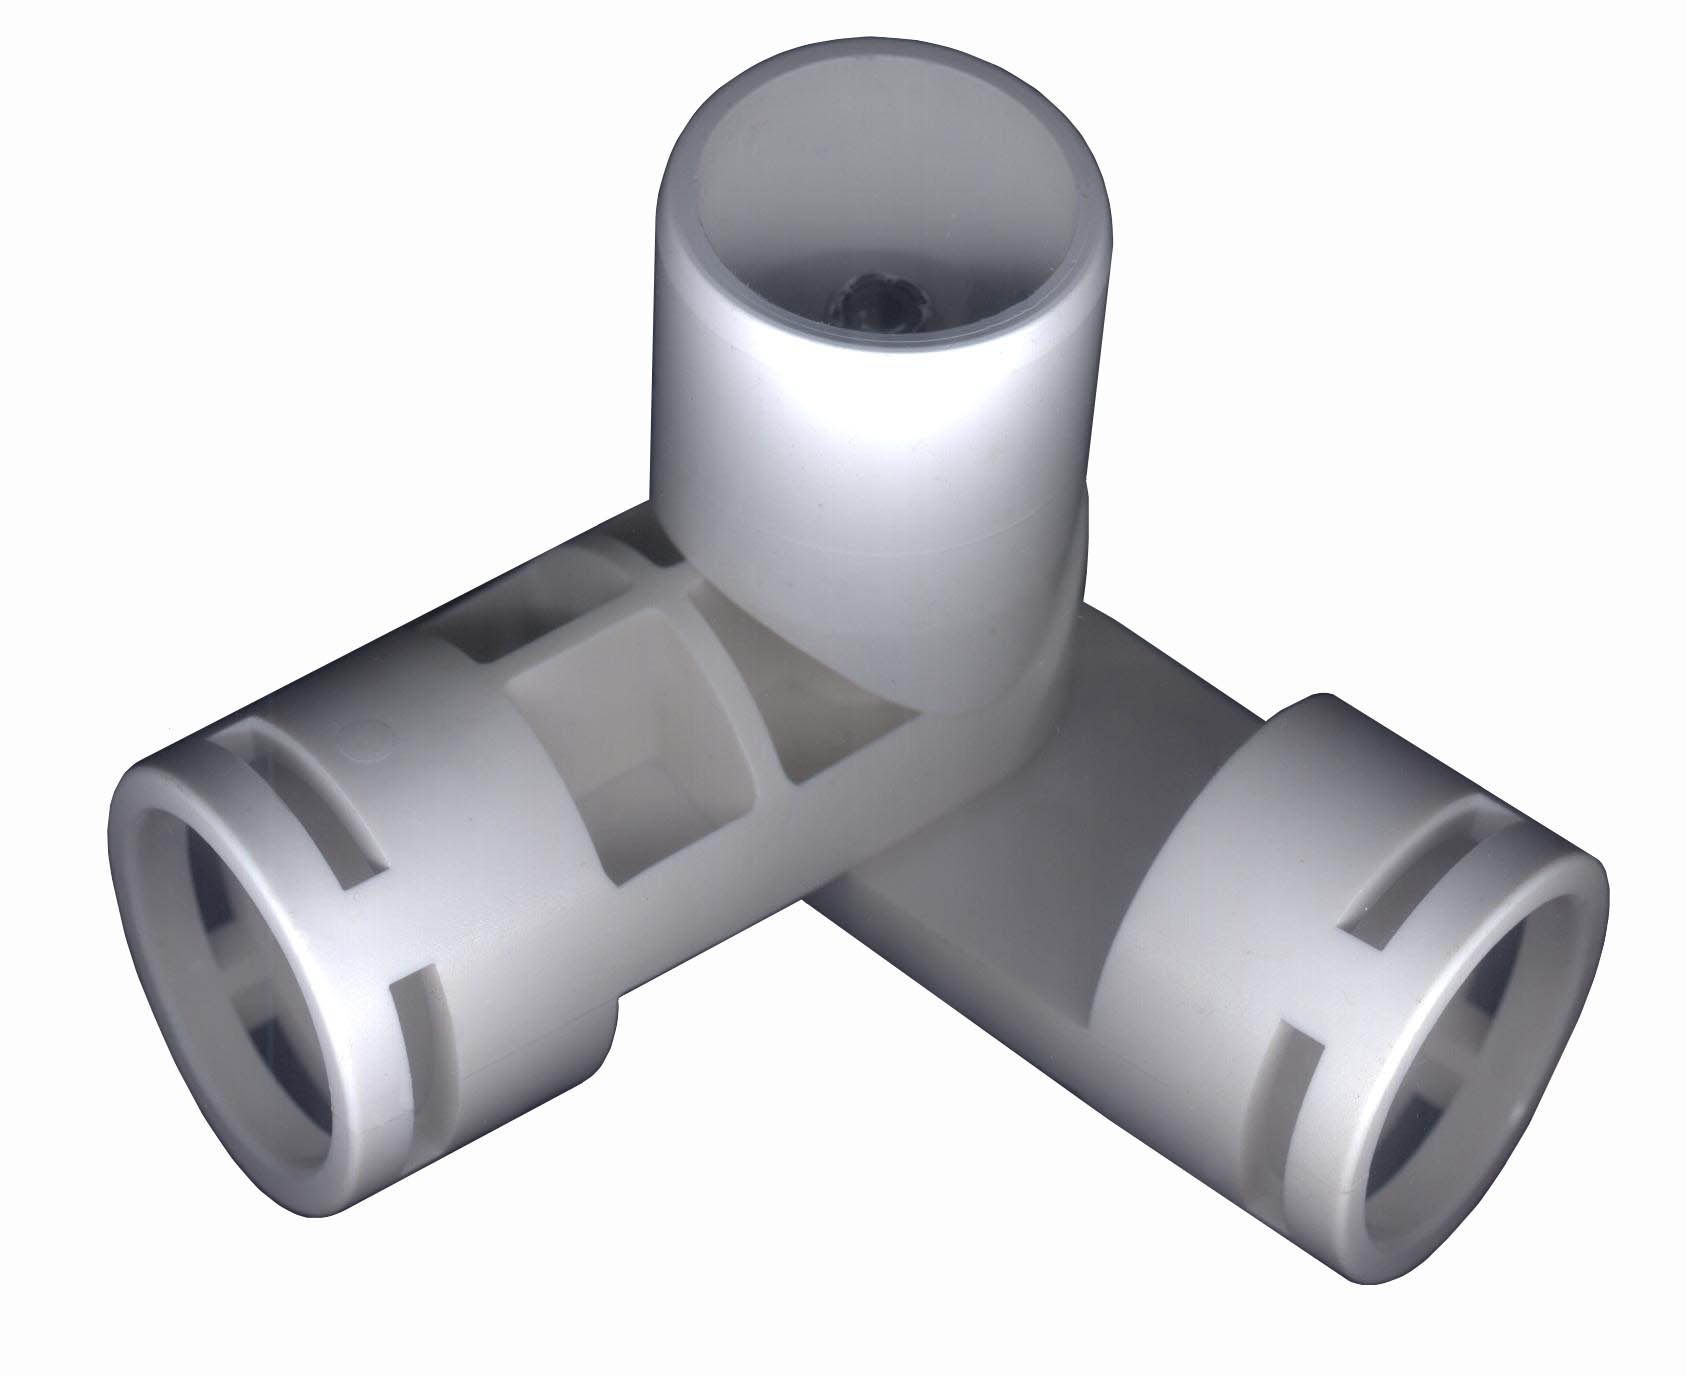 White pvc fittings creative shelters